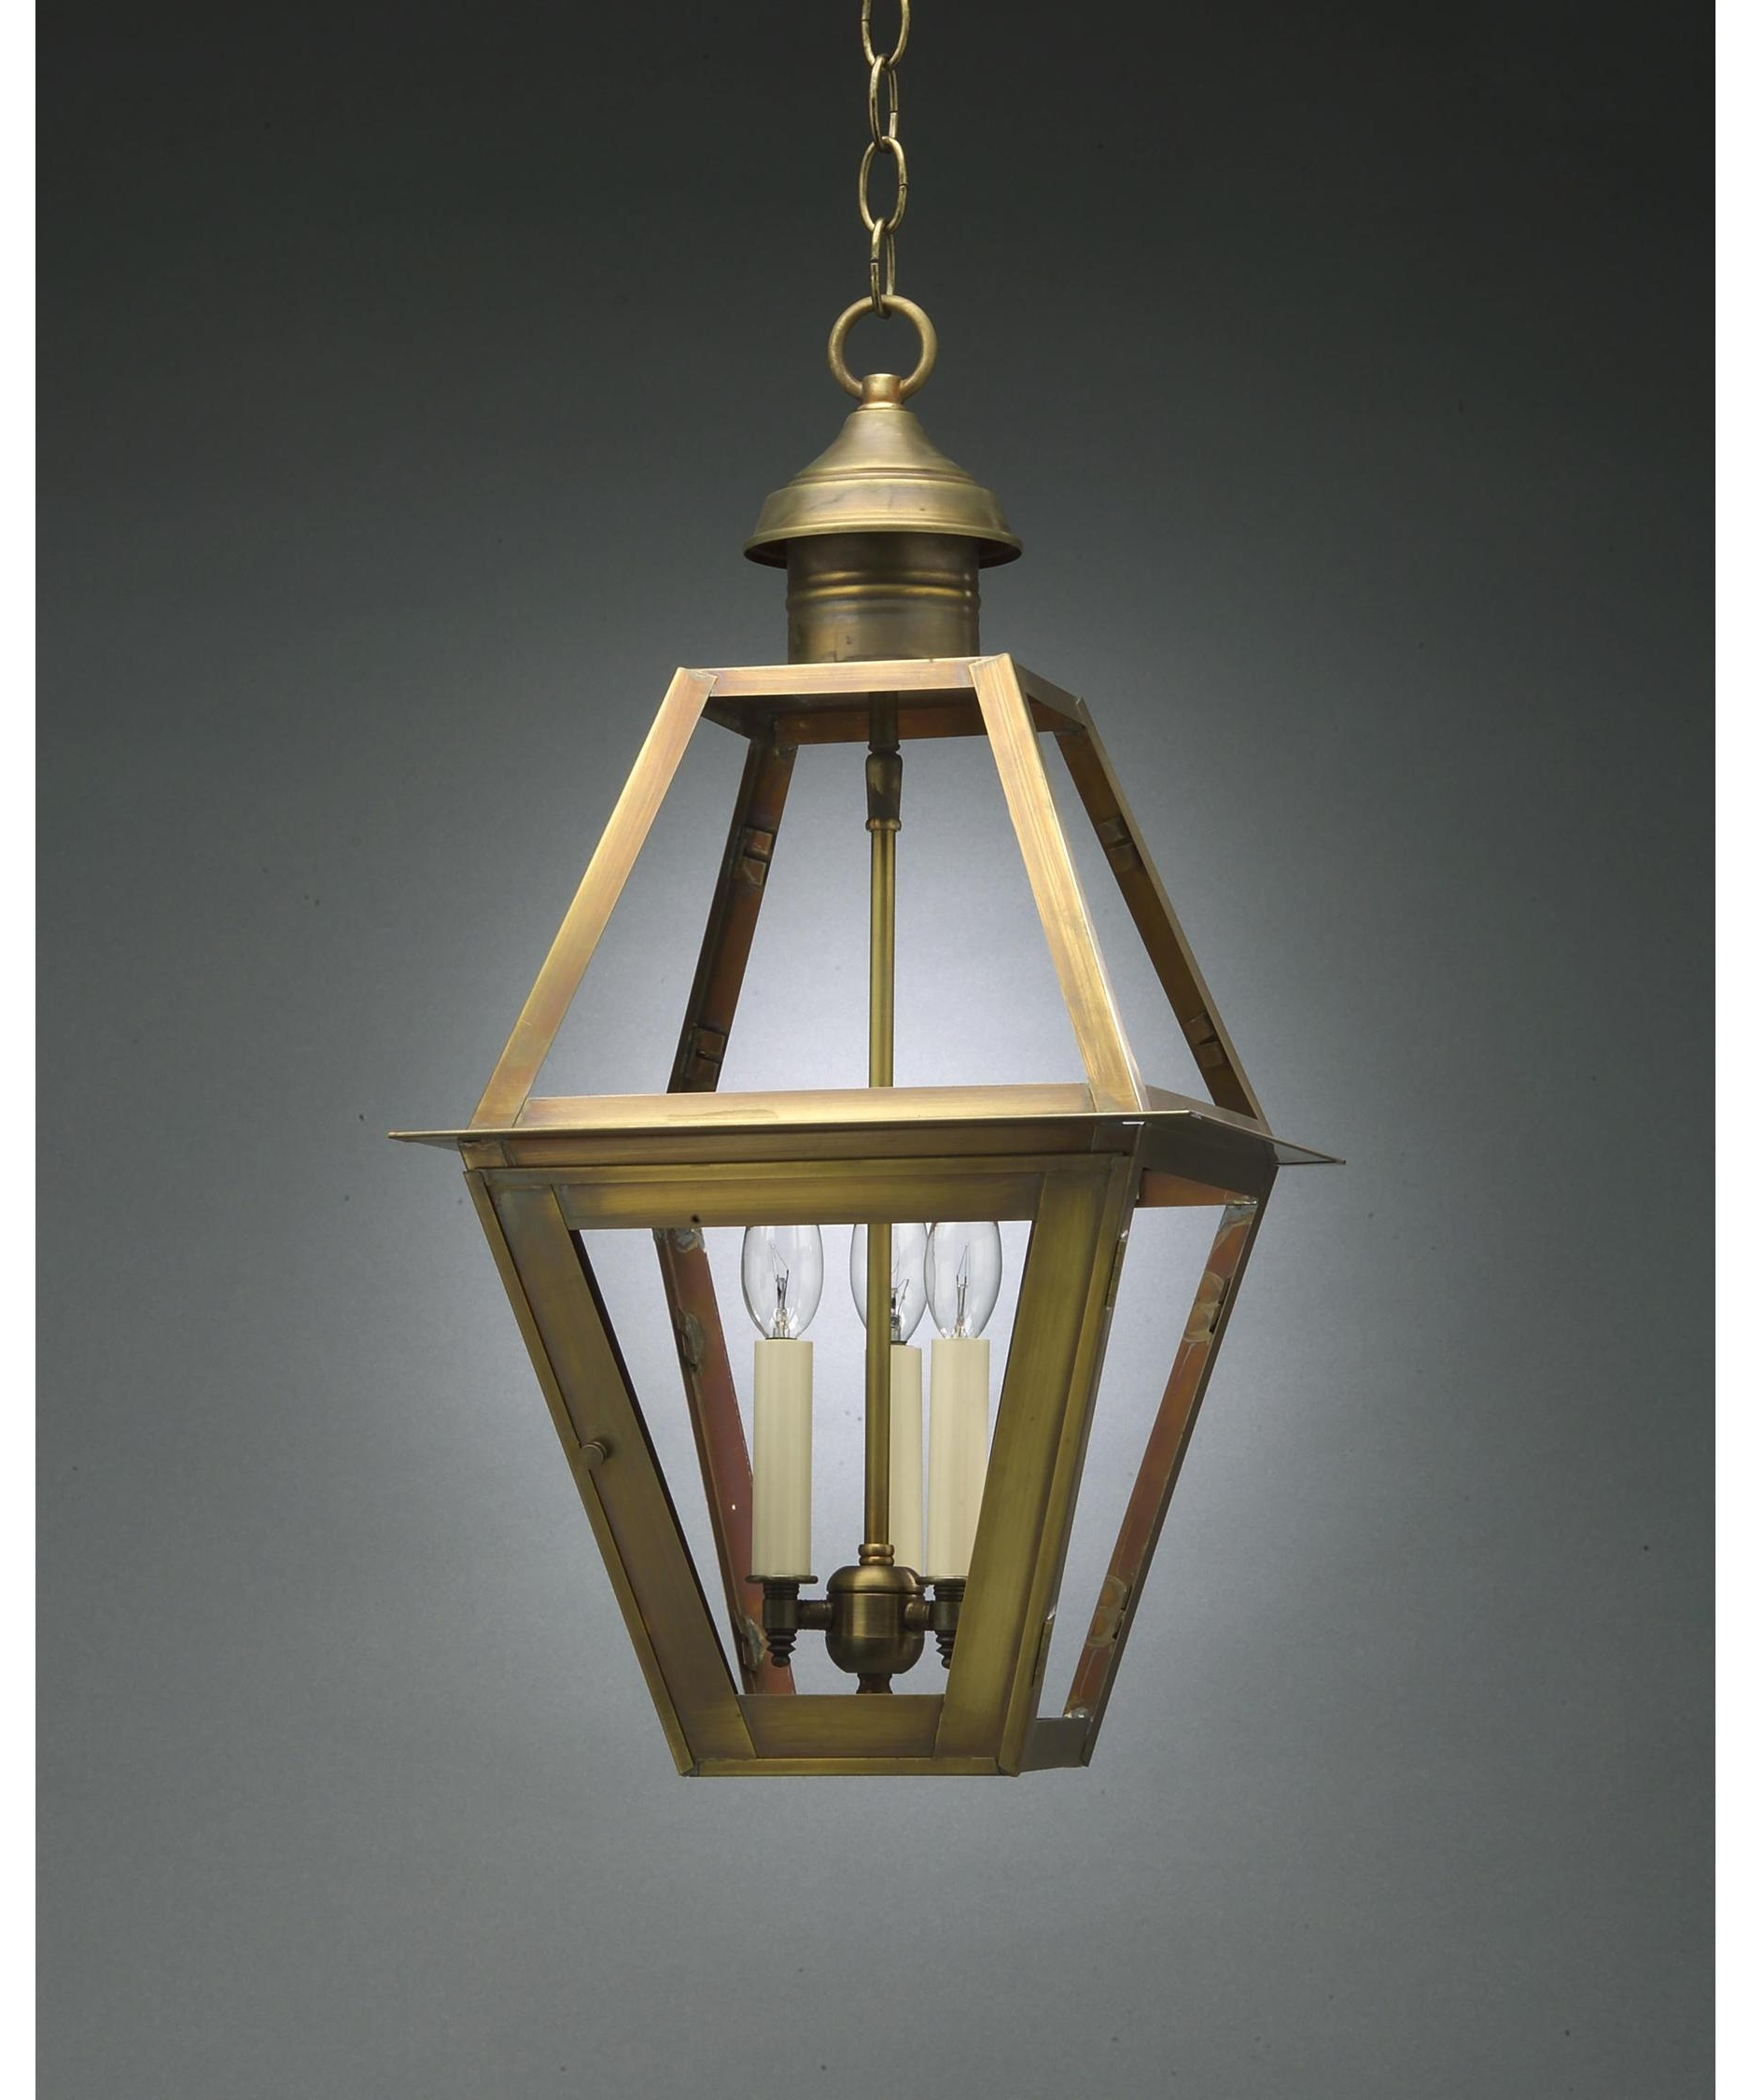 Outdoor Pendant Lanterns For Well Known Northeast Lantern 1012 Lt3 Boston 12 Inch Wide 3 Light Outdoor (View 7 of 20)